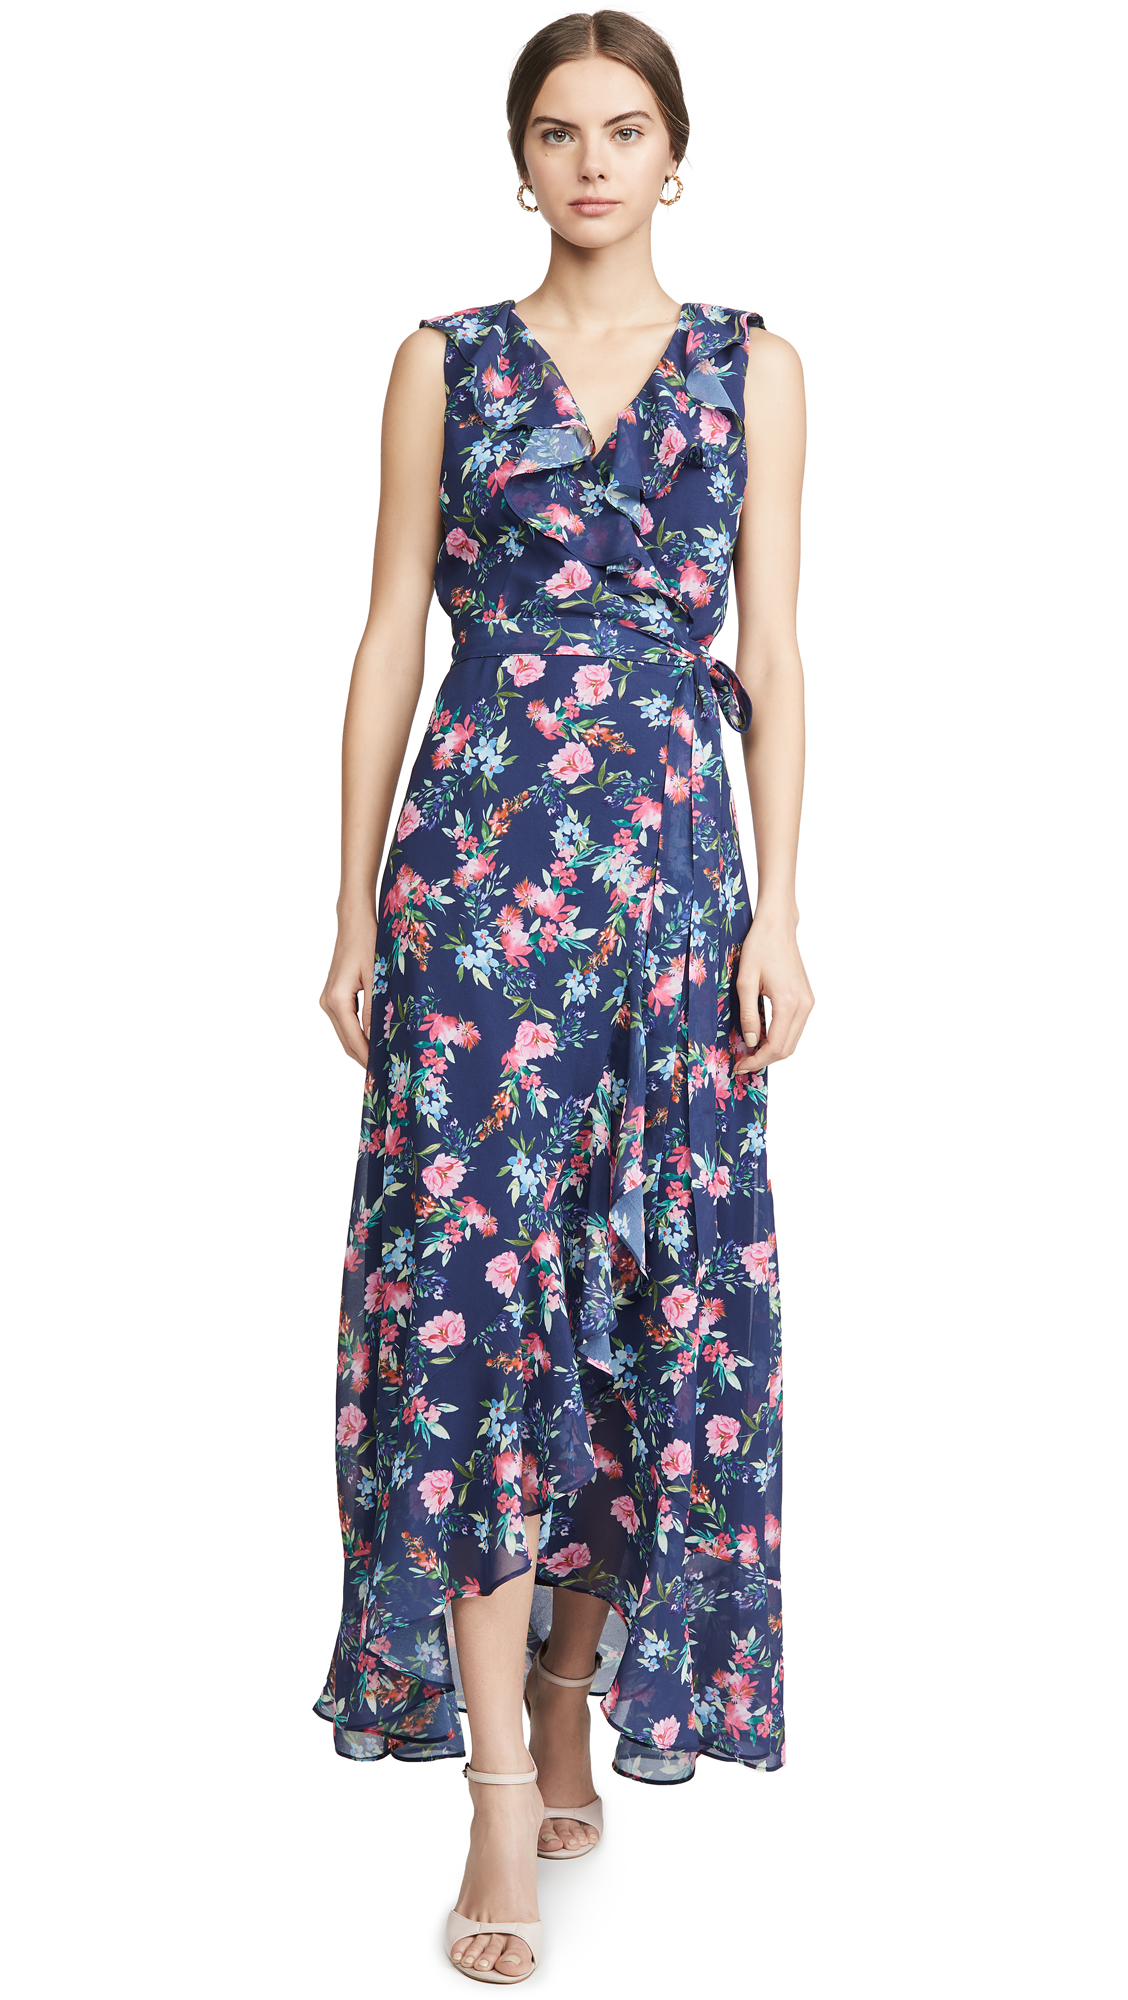 Yumi Kim Carla Maxi Dress - 50% Off Sale